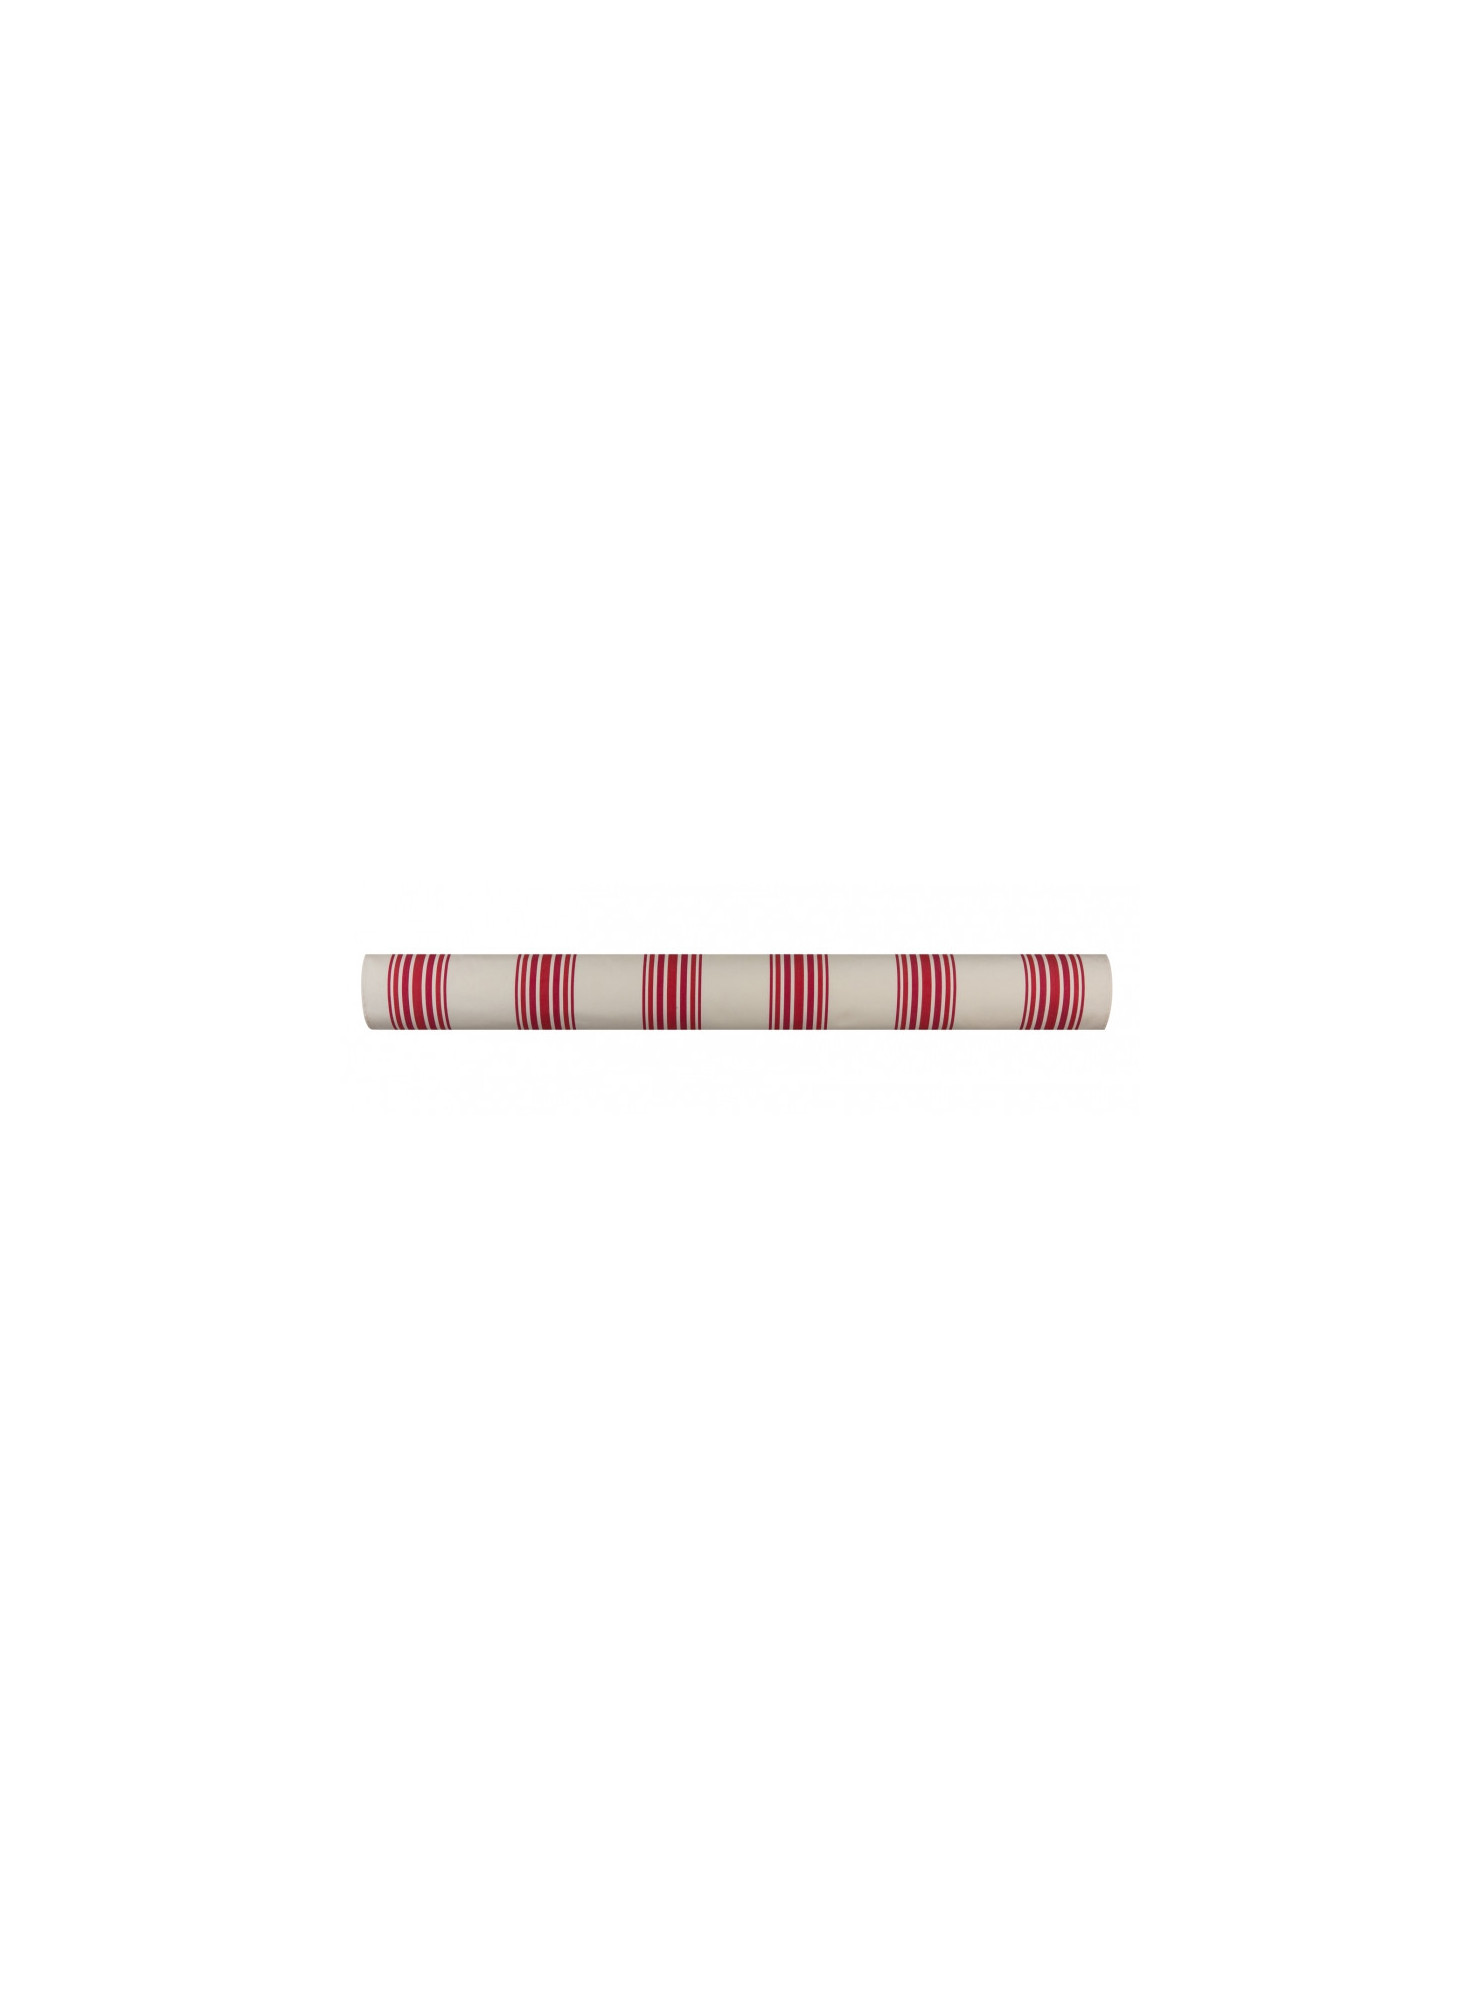 Cotton by the meter Tradition Pipera basque linen cotton